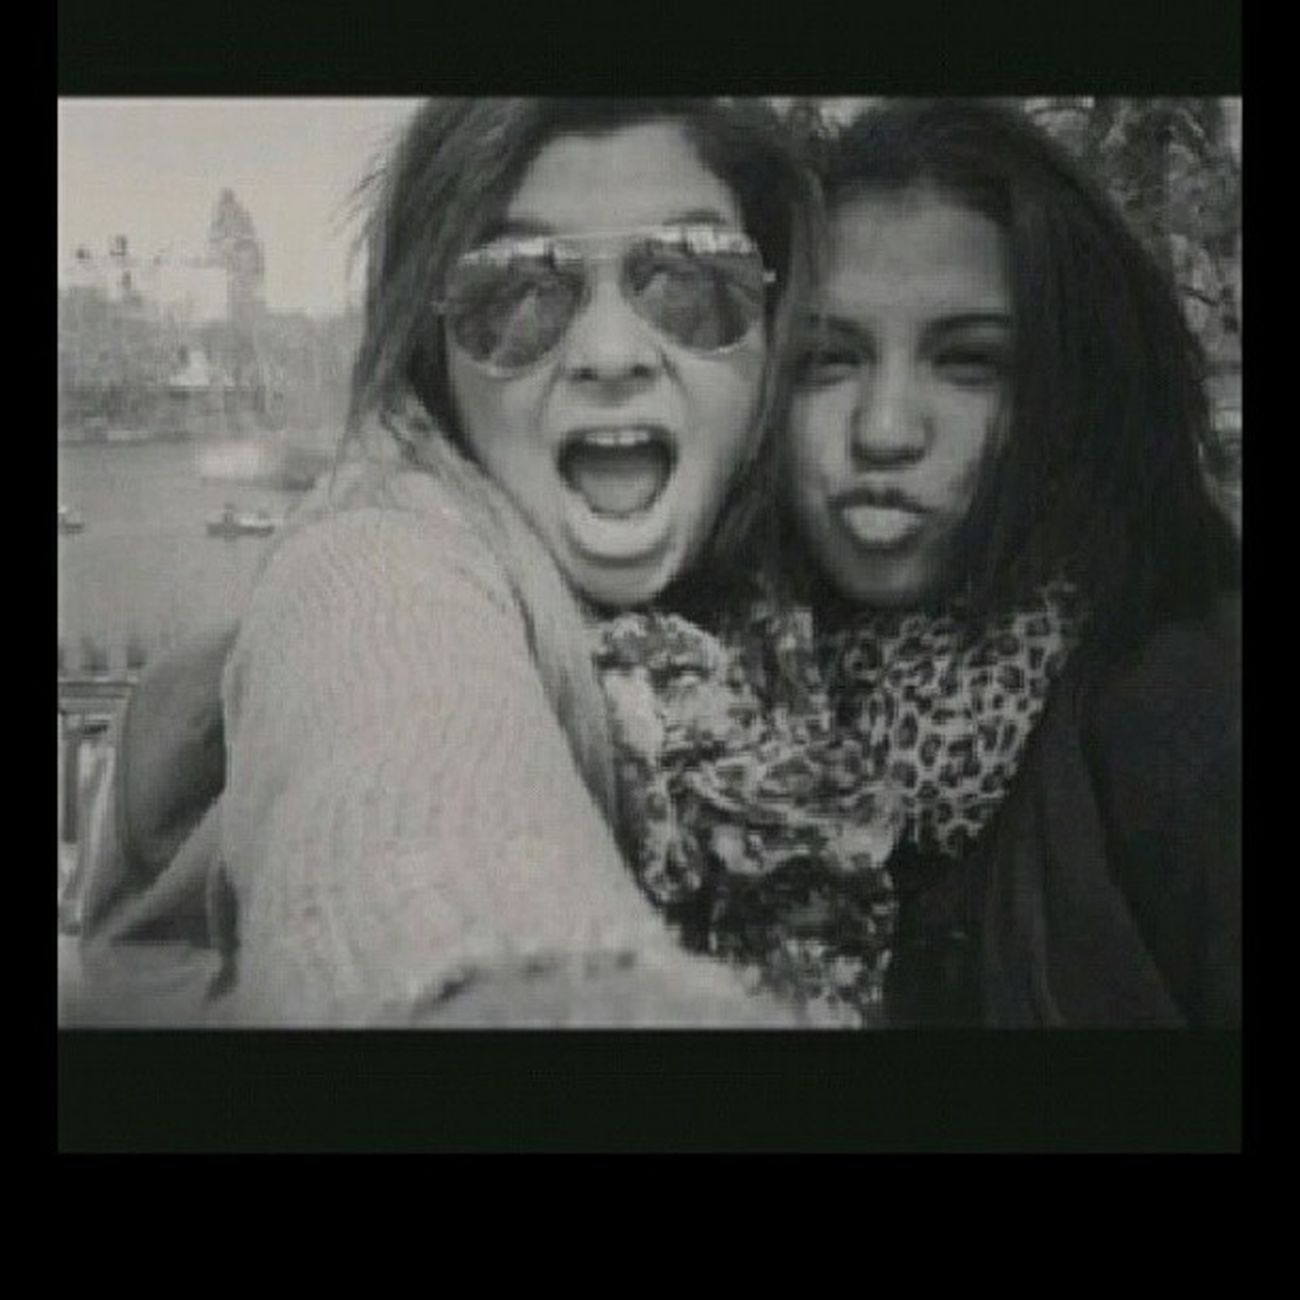 Friends Sisters NewYork2013 Fun familyinstagramlovelycuteprettyinstafunlikeforlikel4lfollow @sofcarrizo love you <3